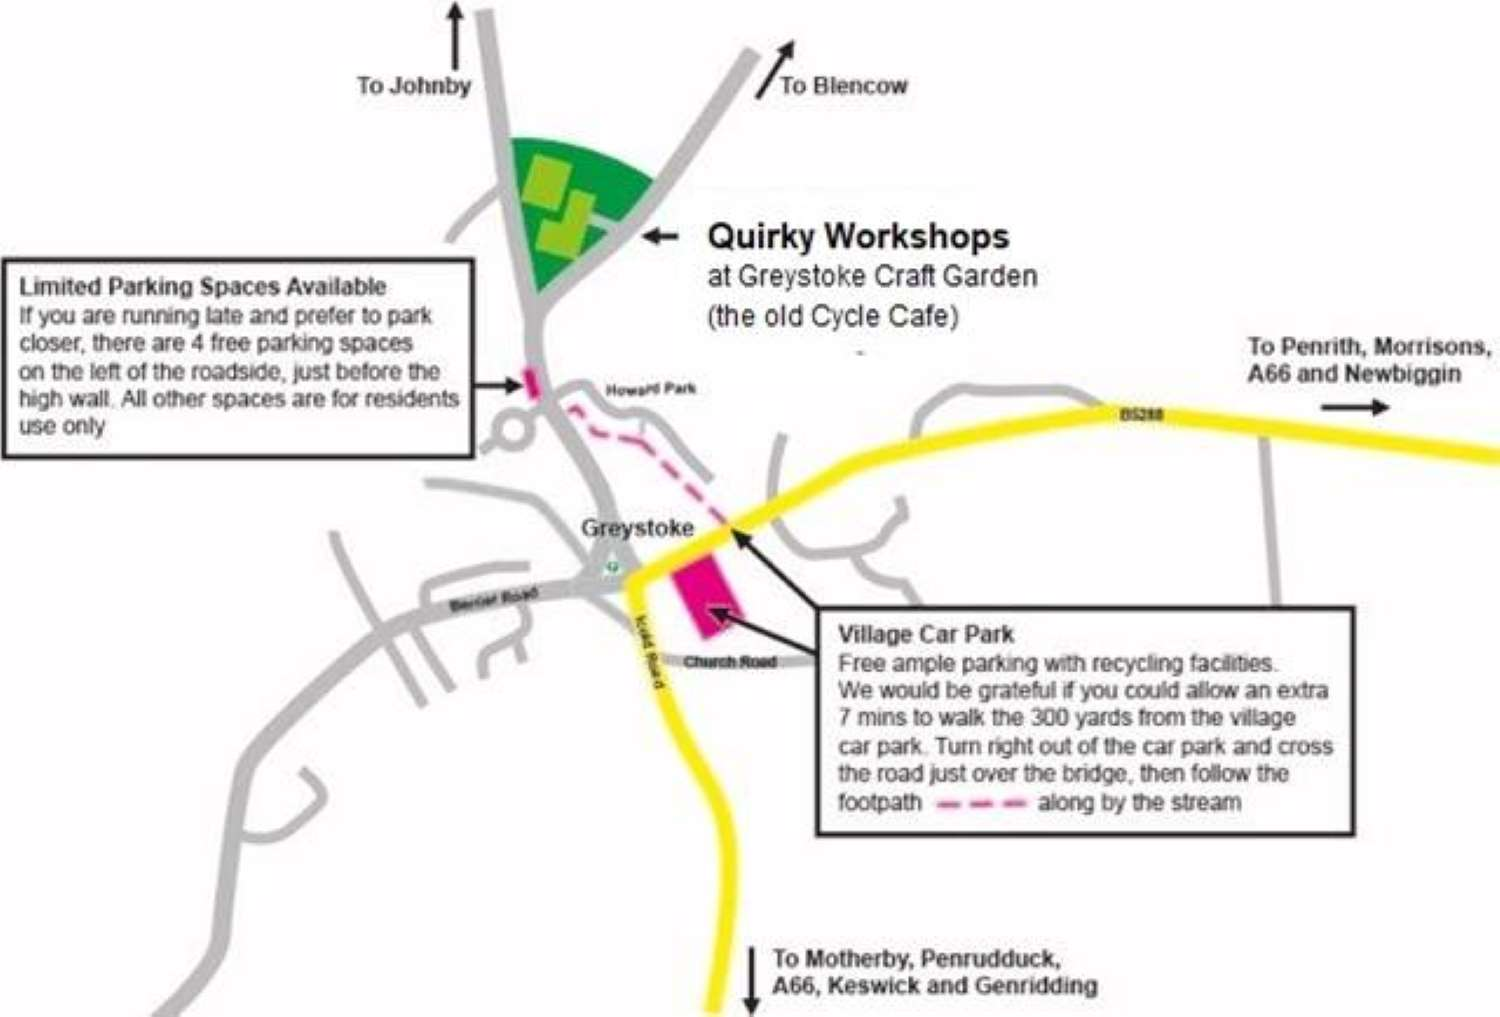 Quirky Workshops Parking Map